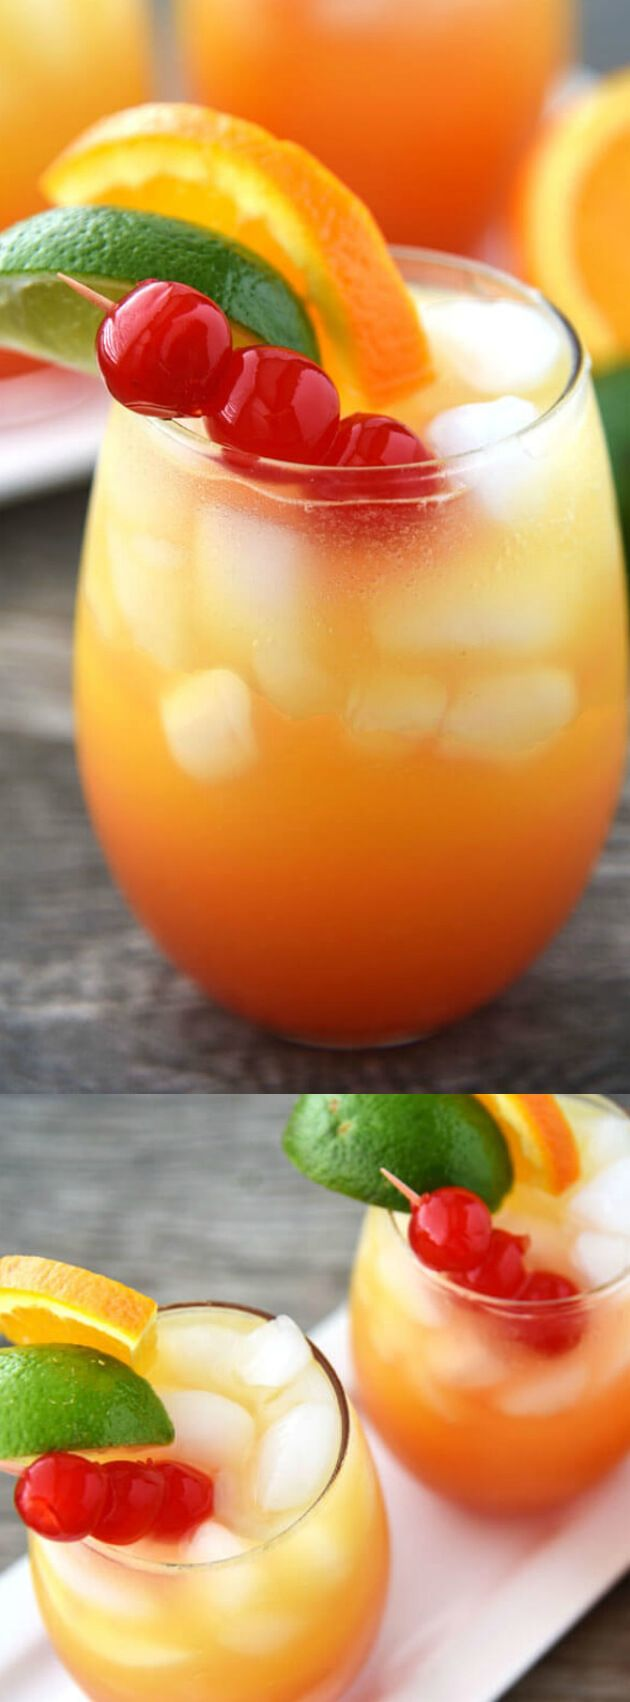 This Mai Tai Cocktail is a refreshing drink that the whole family can enjoy! Orange, lemon-lime and more combine to create one amazing drink via @bestblogrecipes